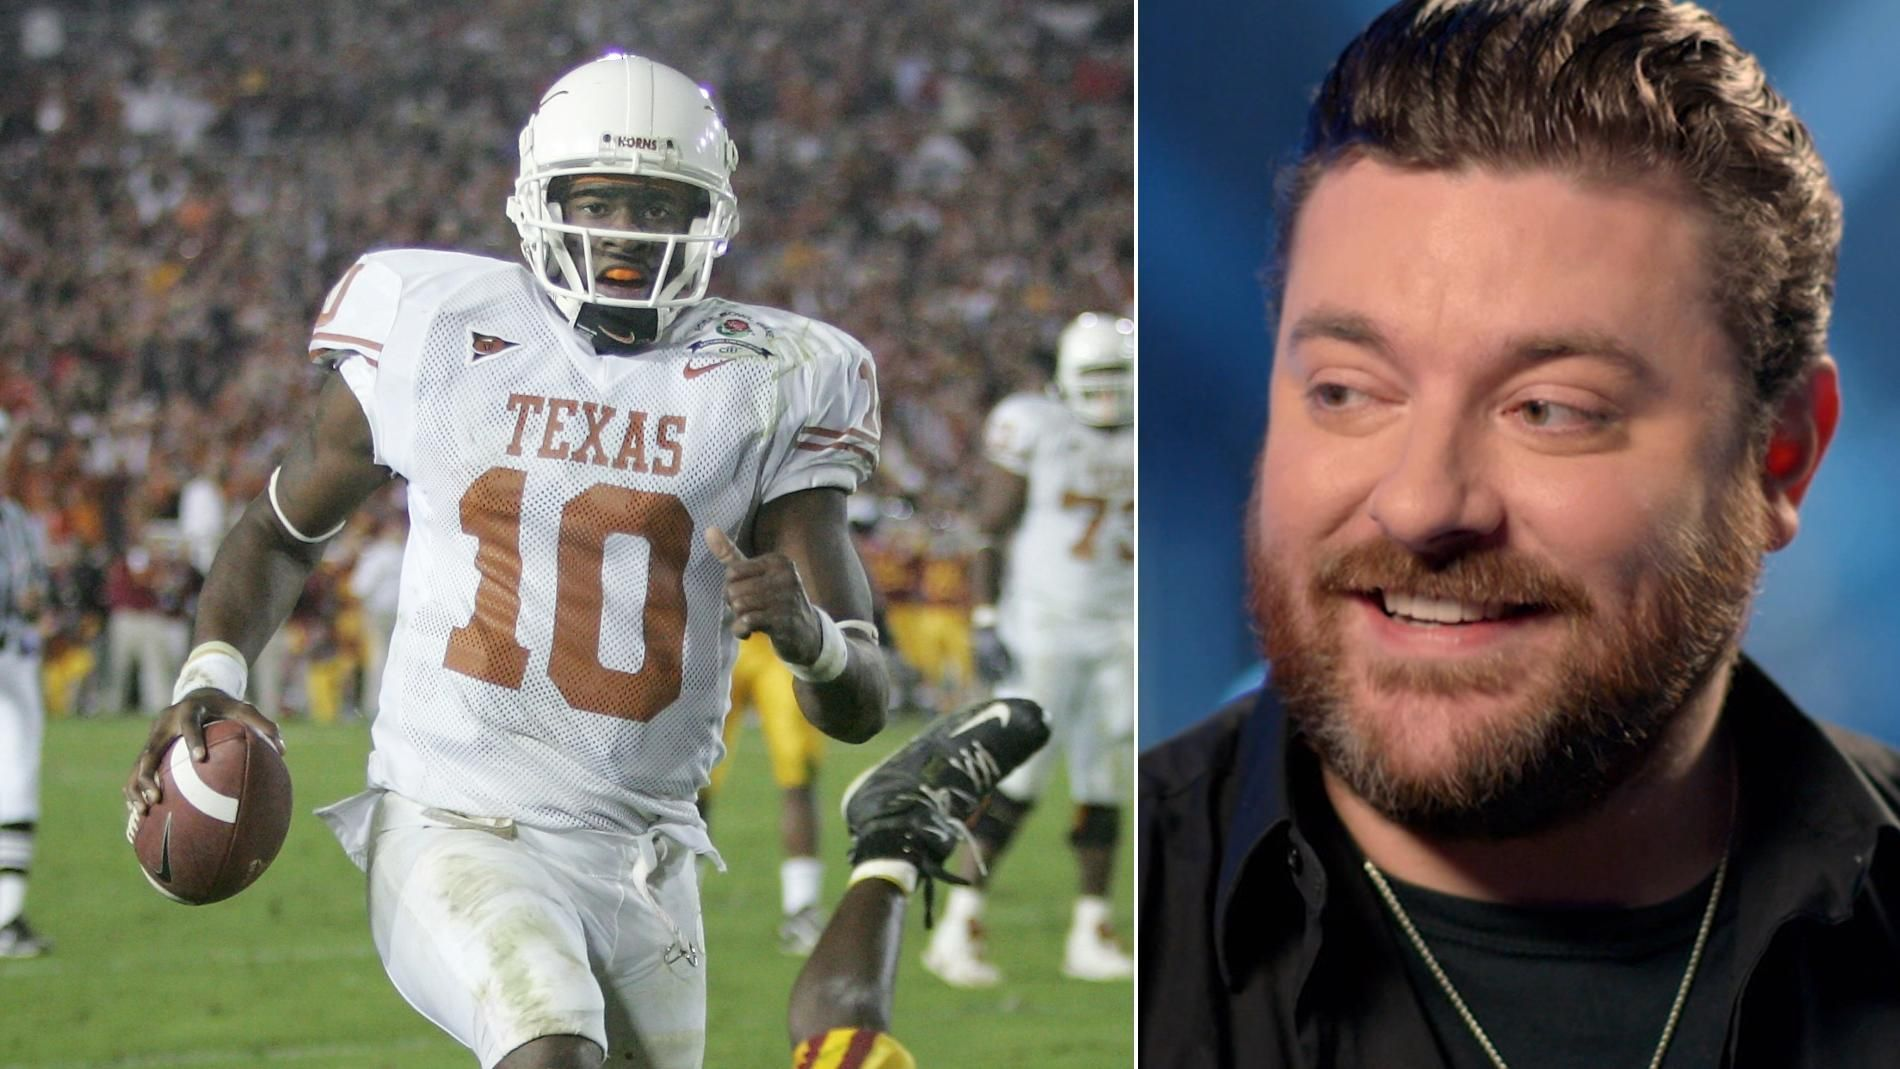 Chris Young recalls Texas' 2006 national championship